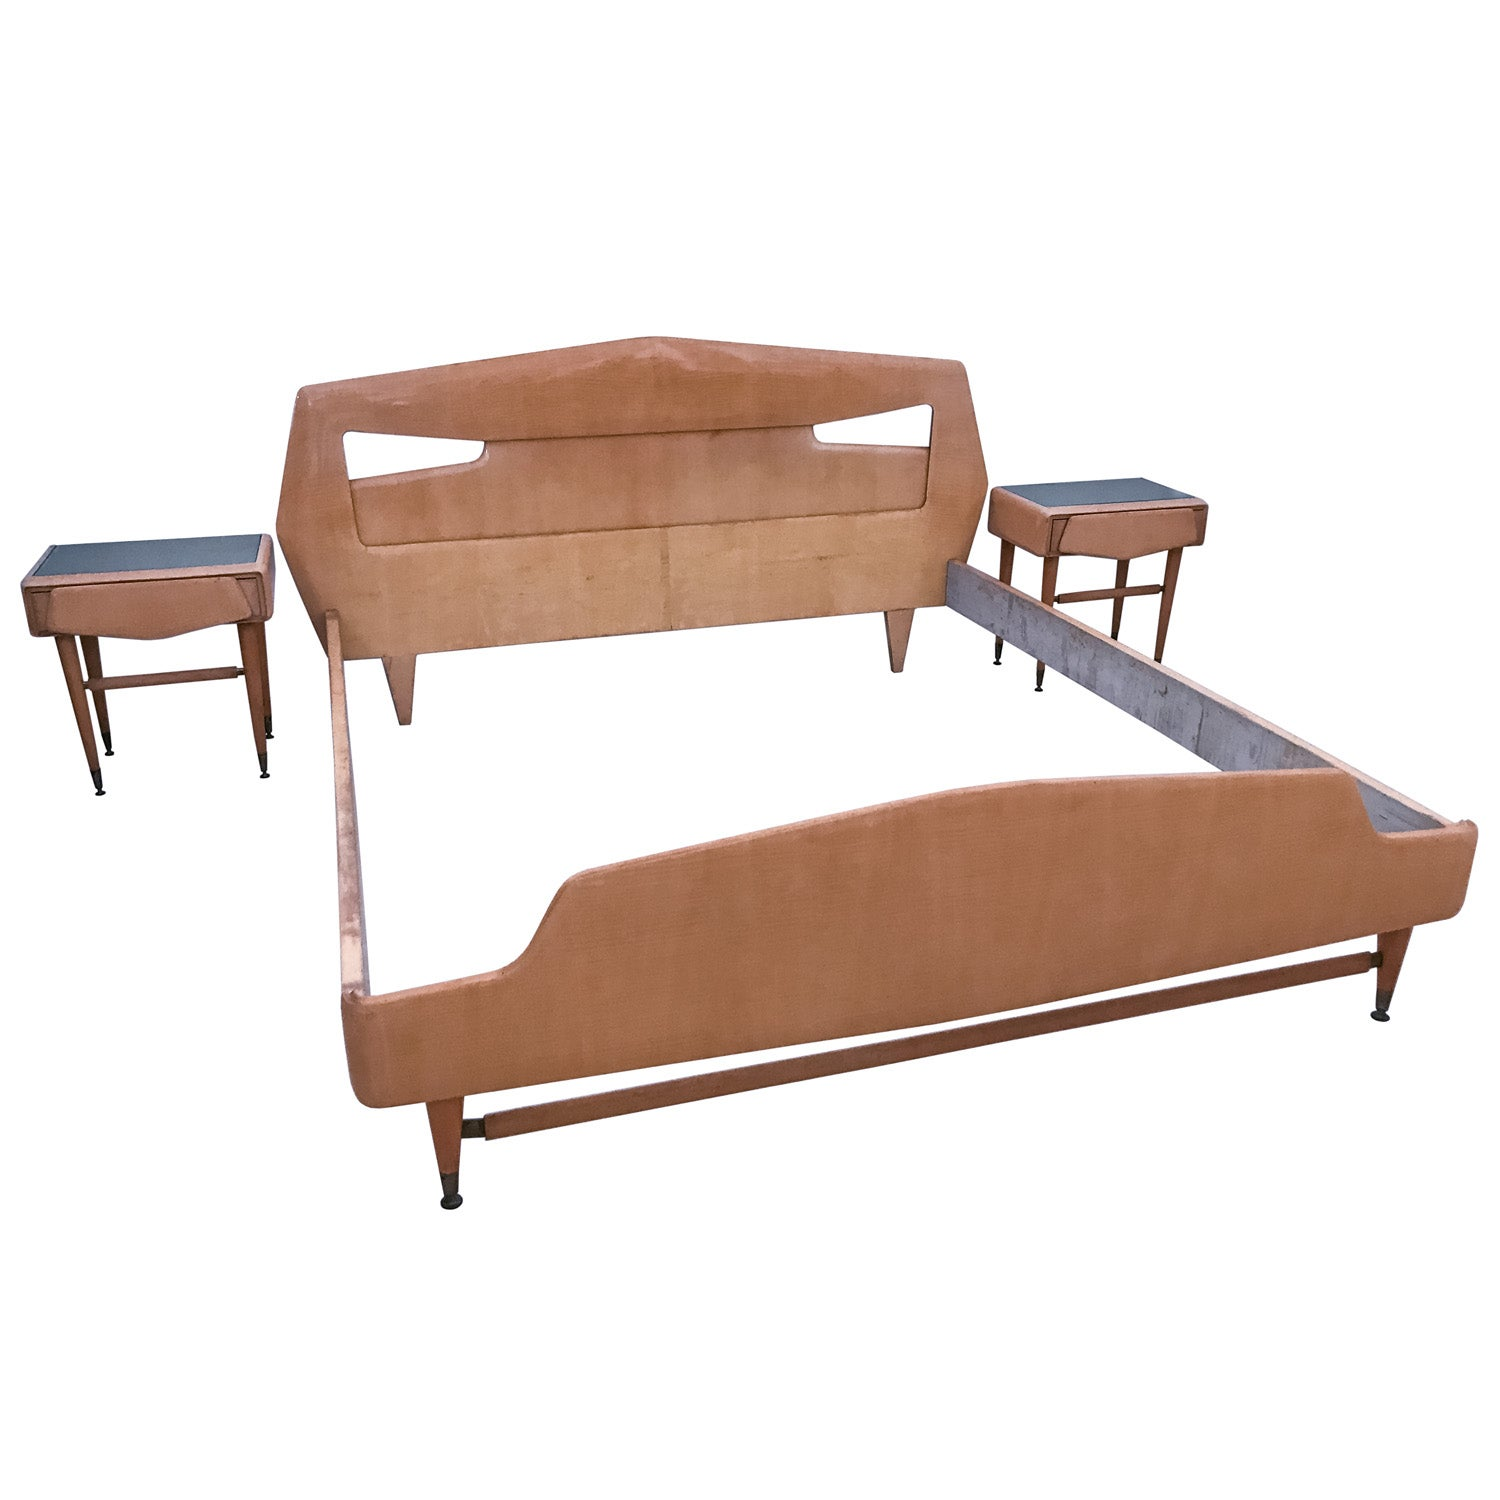 Italian Mid-Century Bed with Bedside Tables attr. to Silvio Cavatorta, 1950s